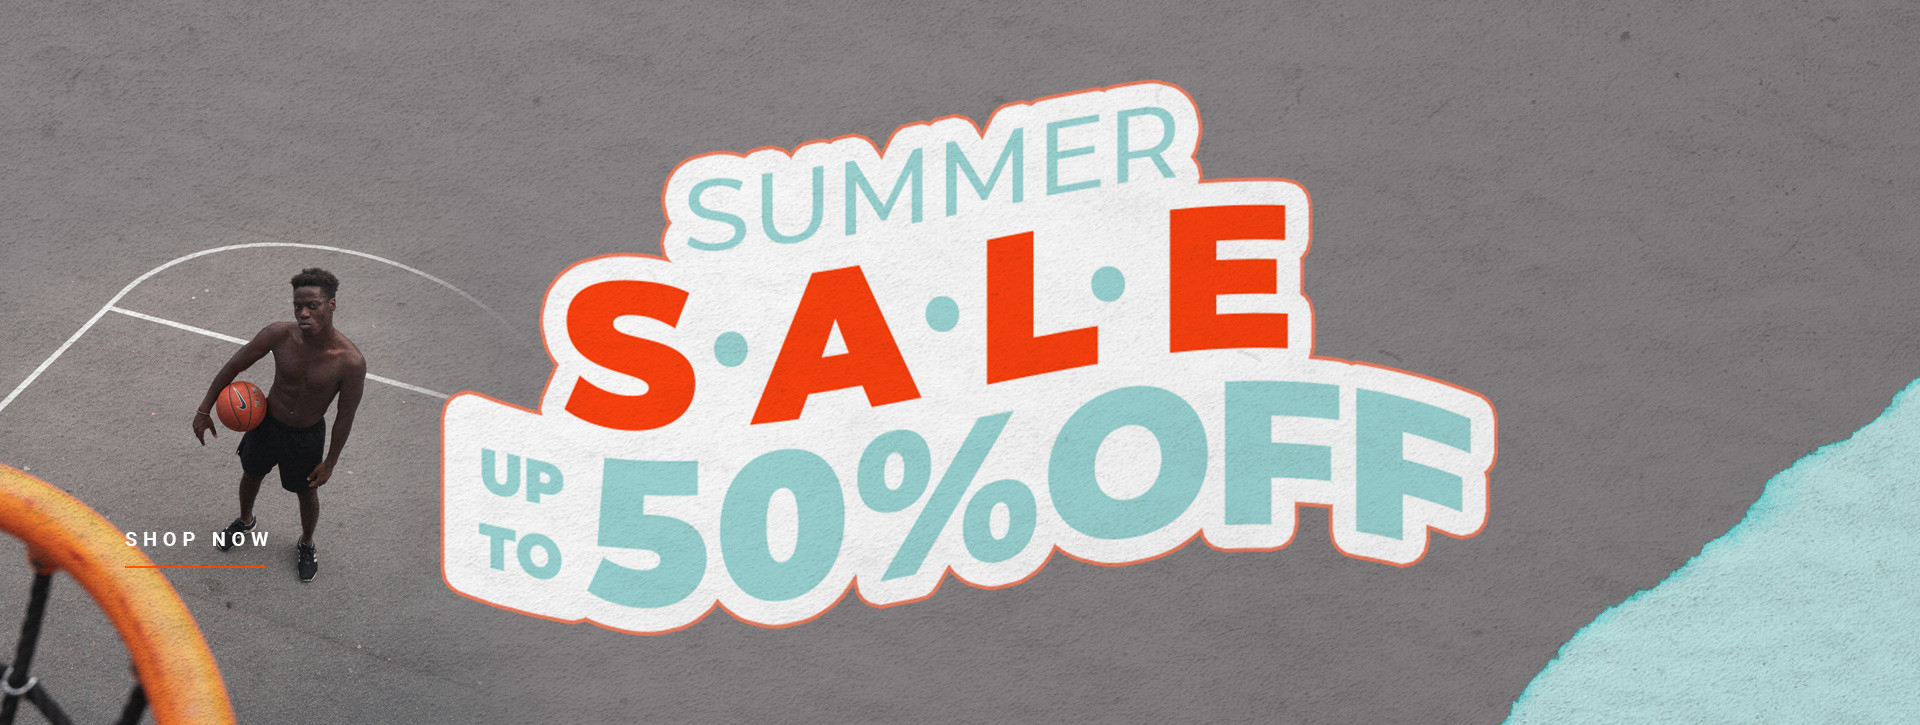 Summer Sale Up to 50% OFF